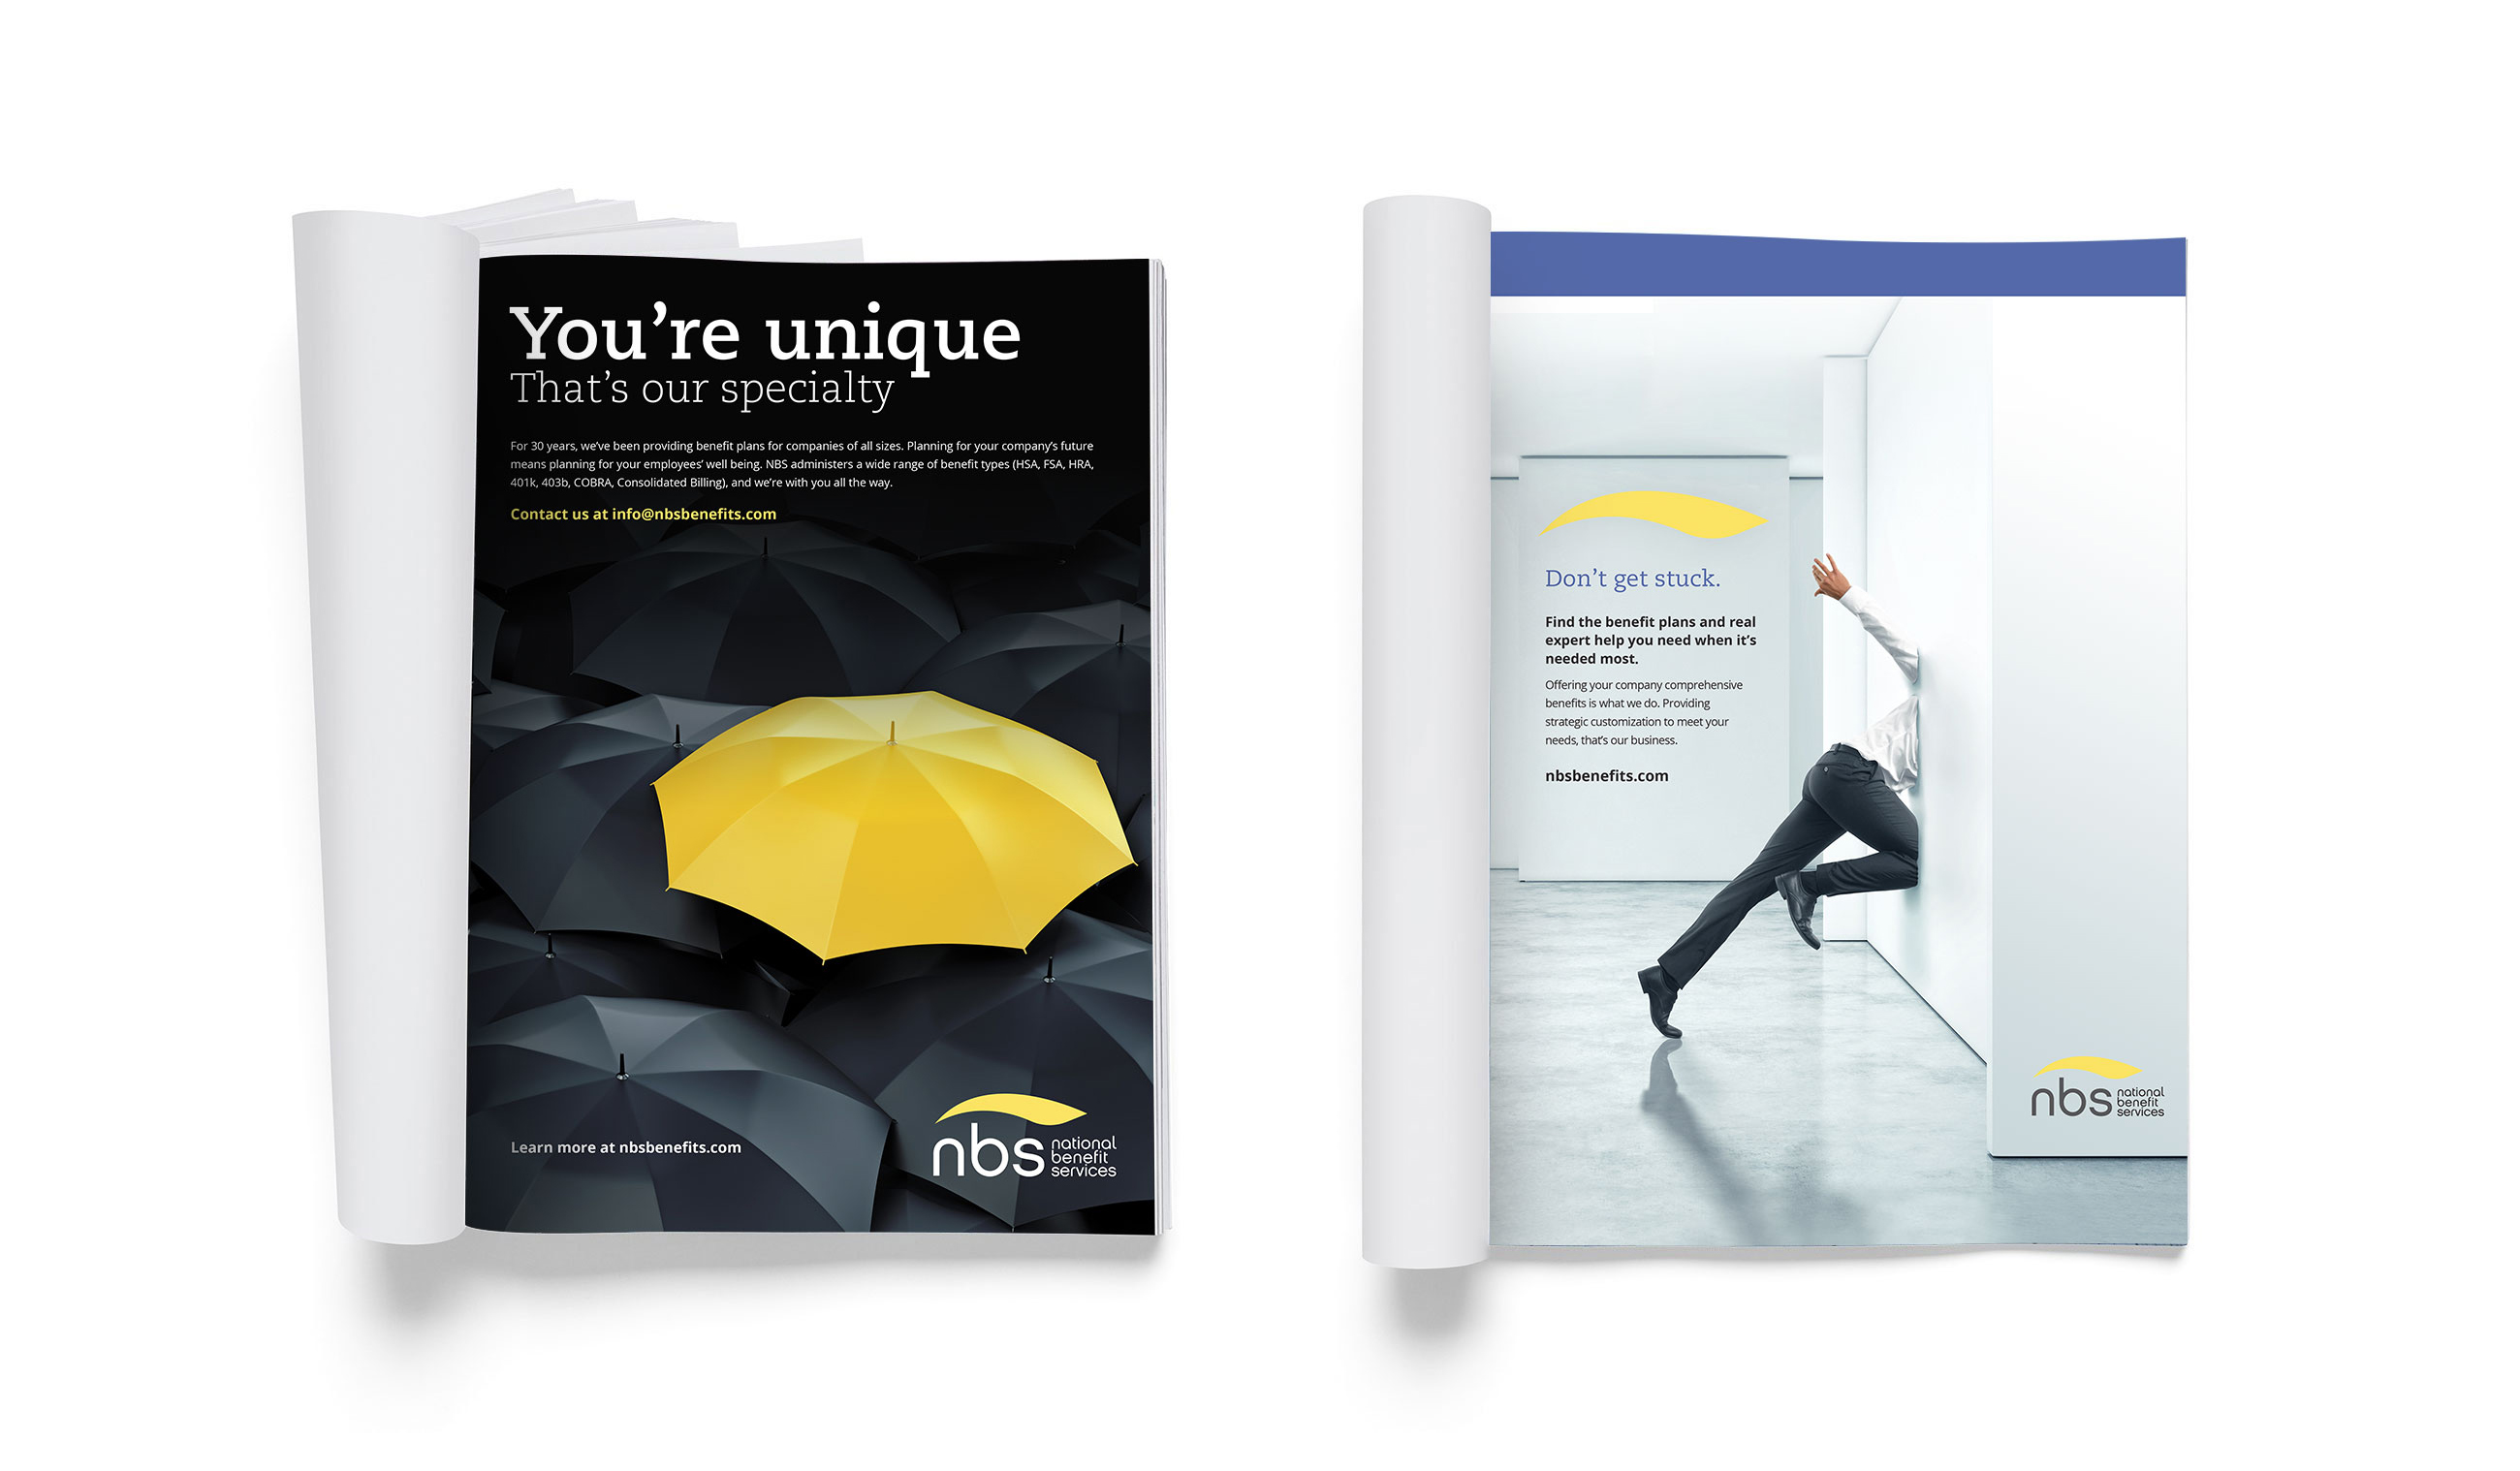 NBS full page magazine advertisments